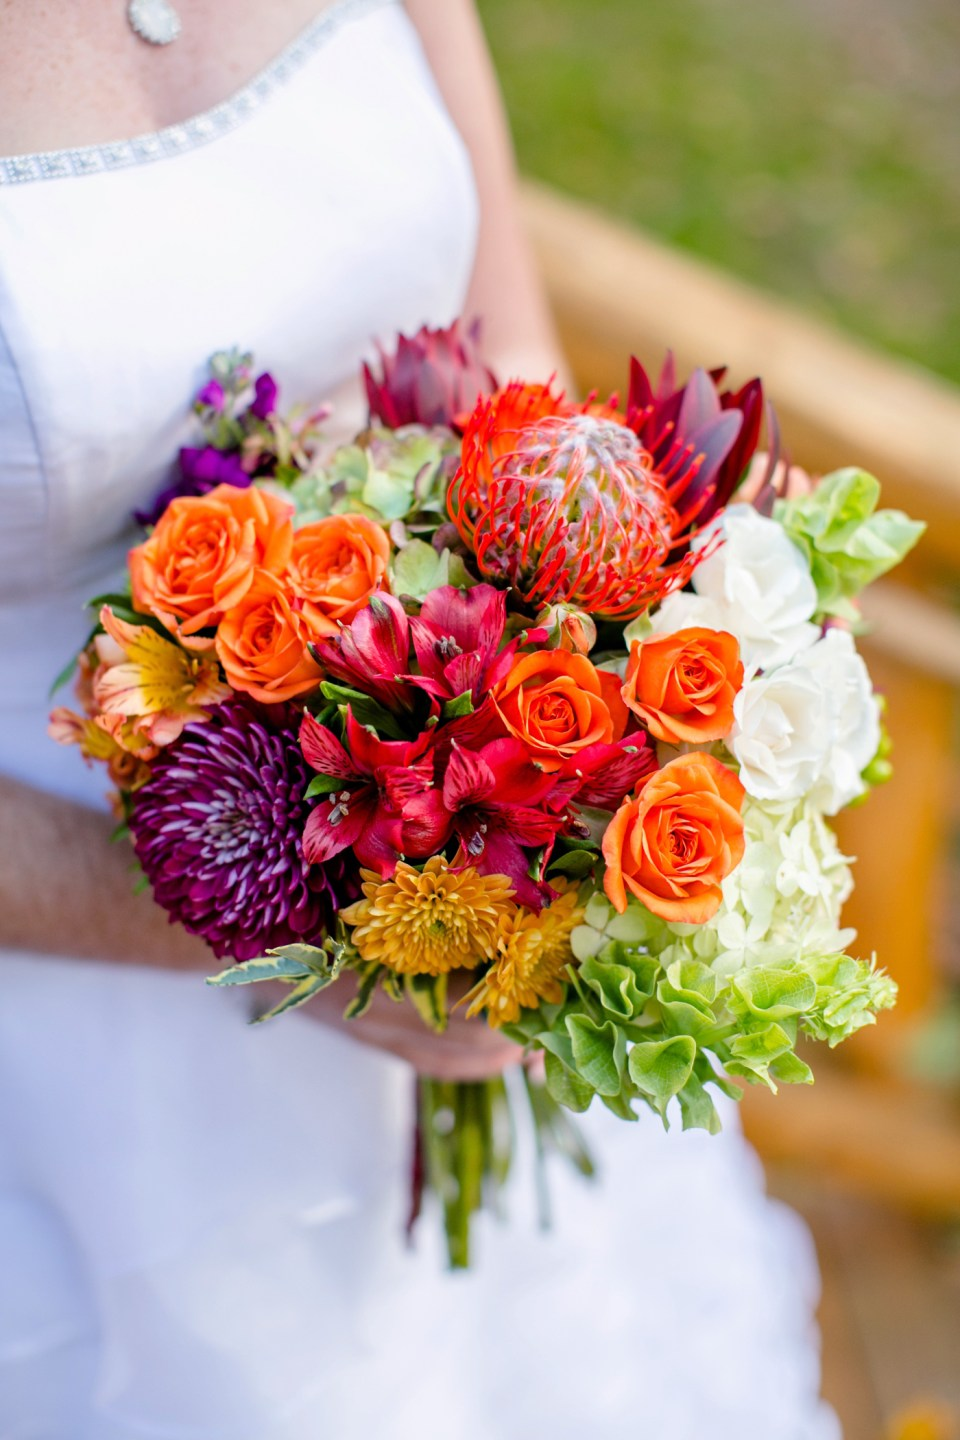 Fall-Wedding-Bouquet-Inspiration-Flowers-Bridal-Bridesmaids394